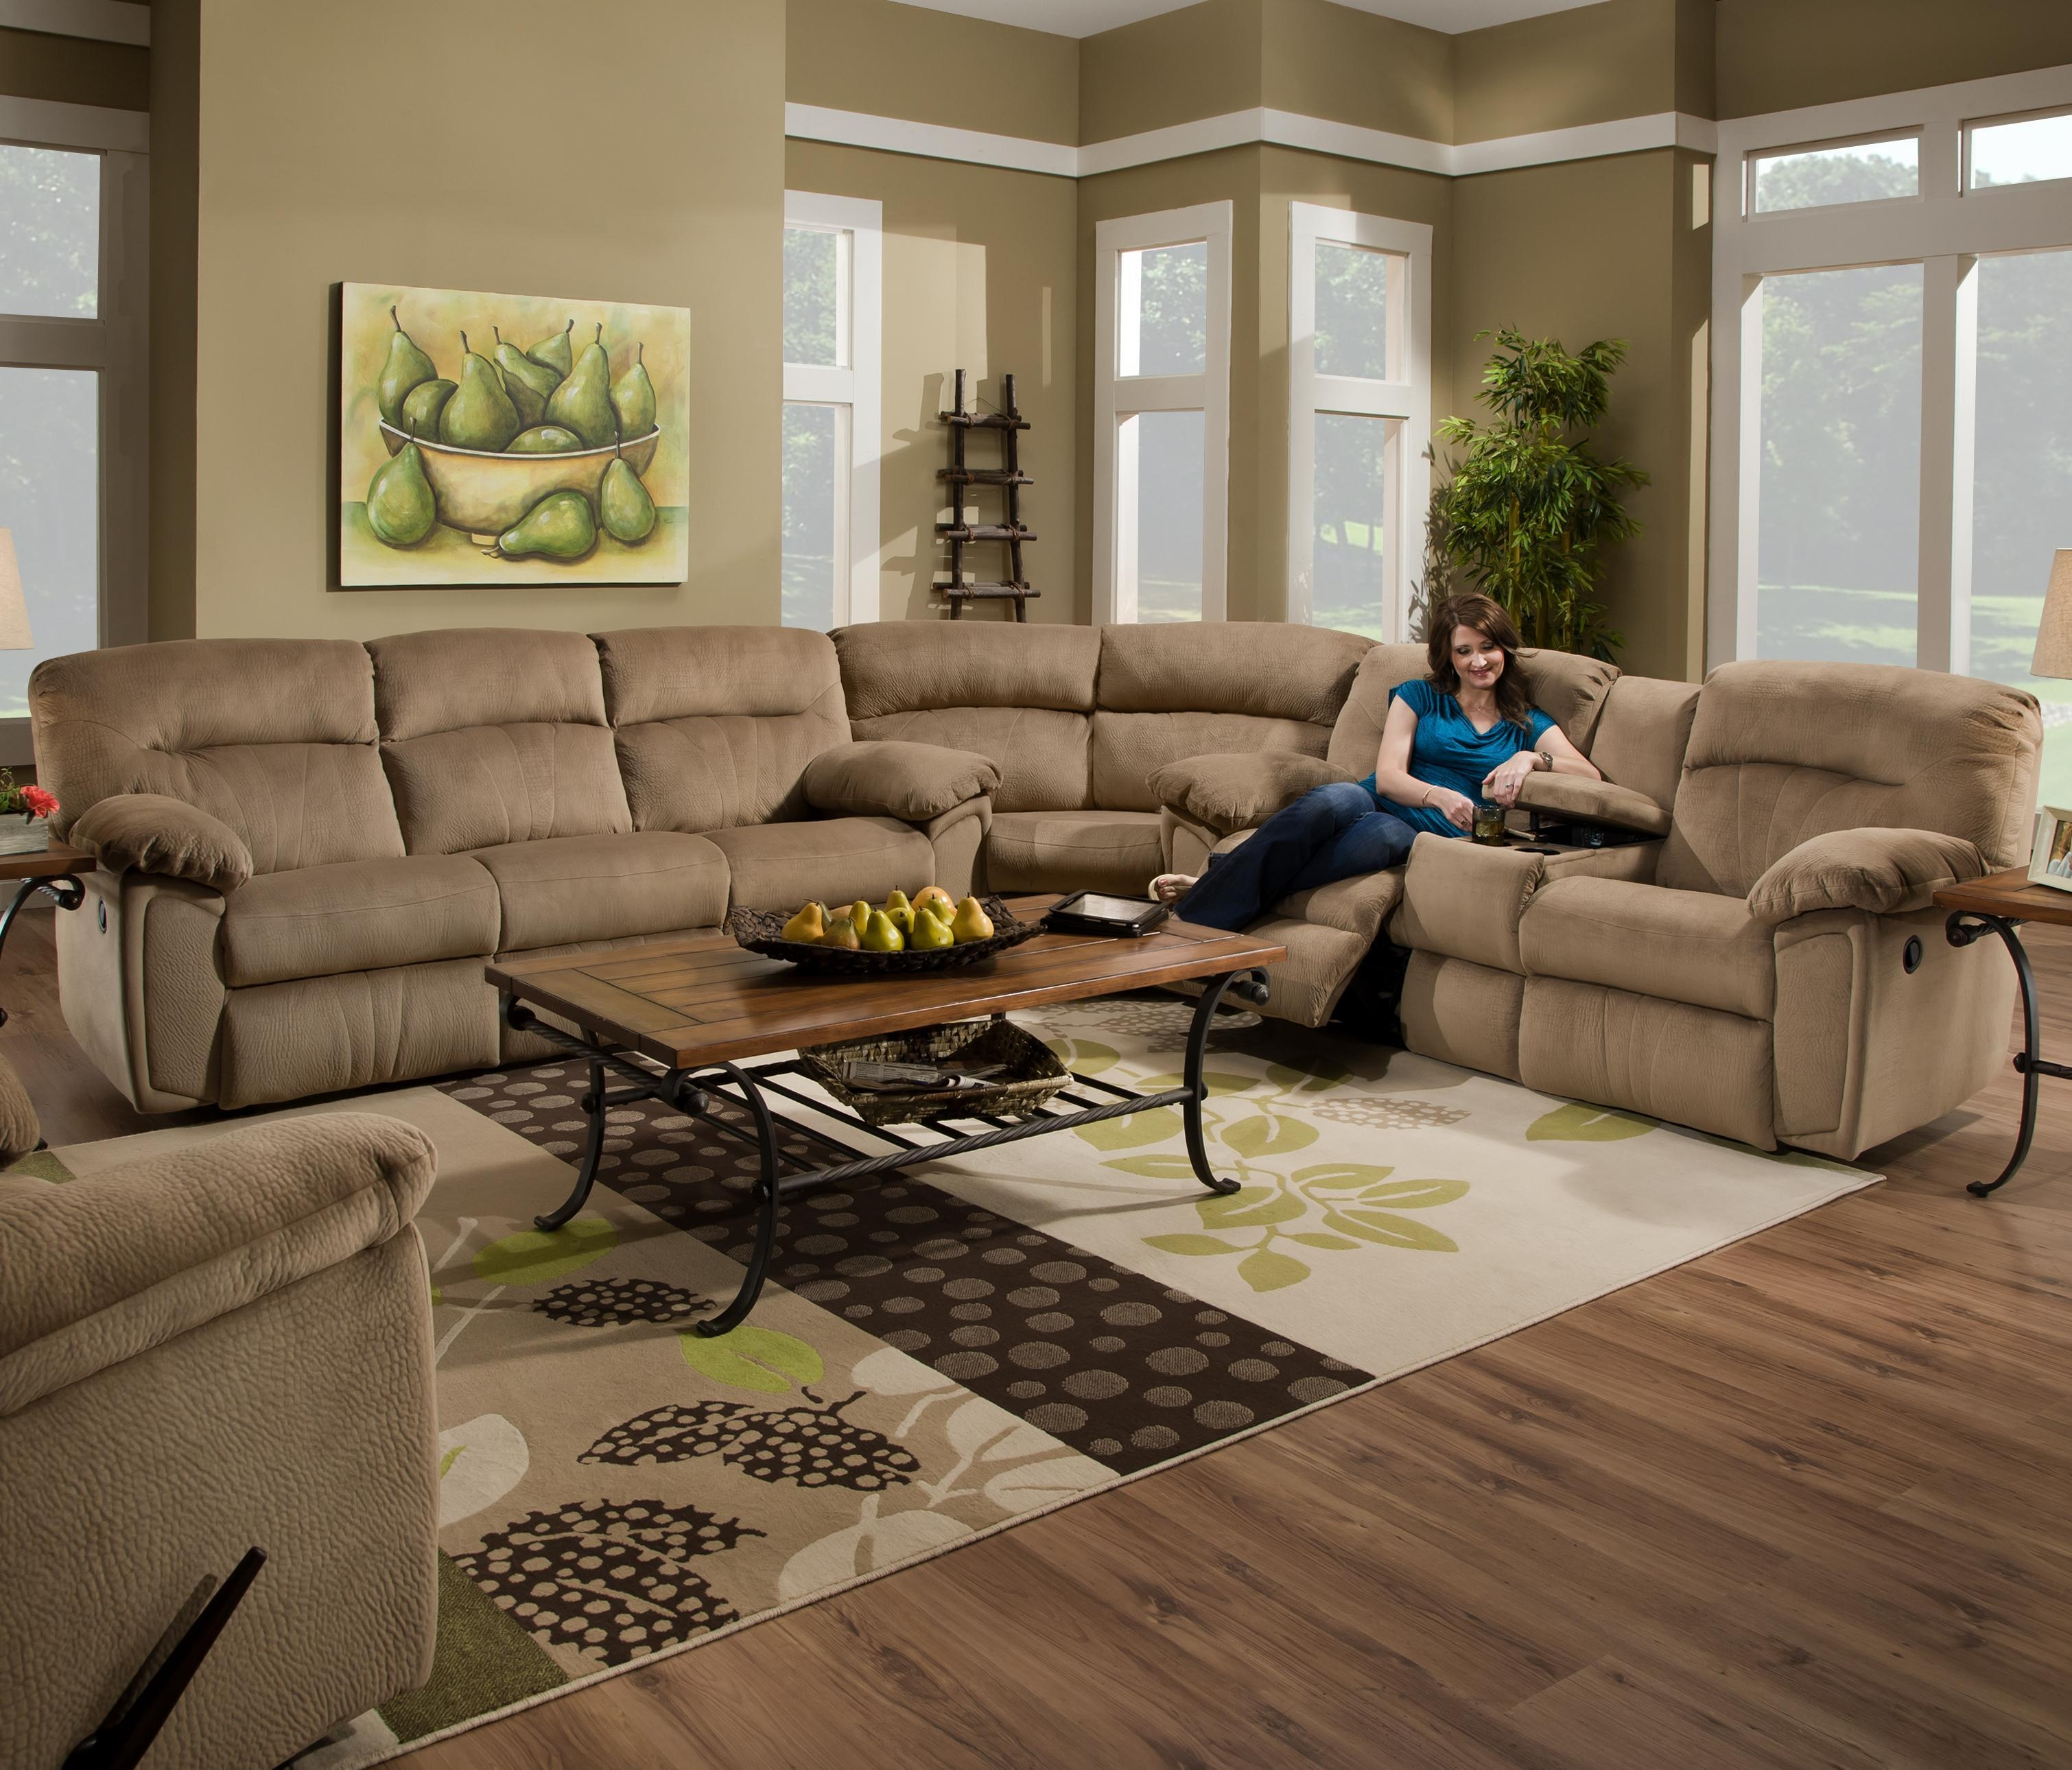 Decorating: Fill Your Home With Comfy Costco Sectionals Sofa For Within 6 Piece Sectional Sofas Couches (View 20 of 20)